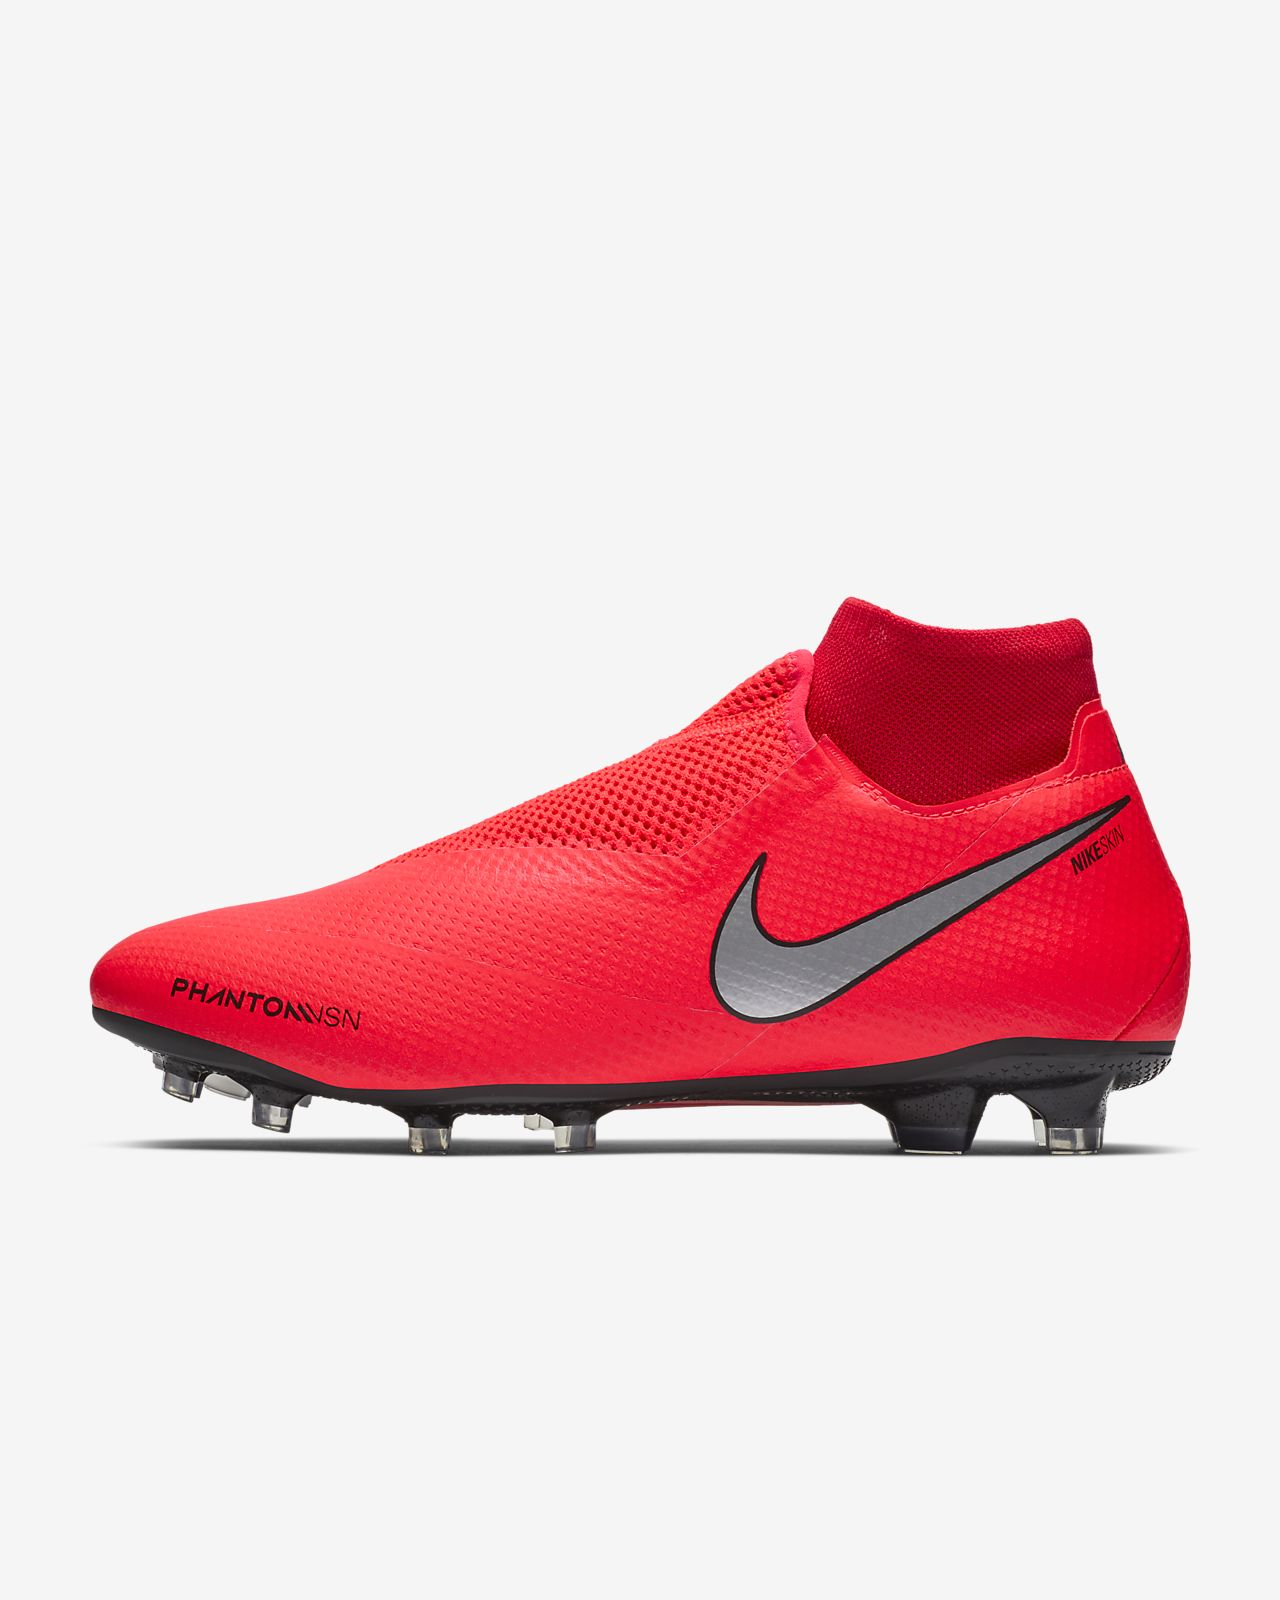 best value d2ee1 5c3b4 Nike PhantomVSN Pro Dynamic Fit Game Over FG Firm-Ground Football Boot